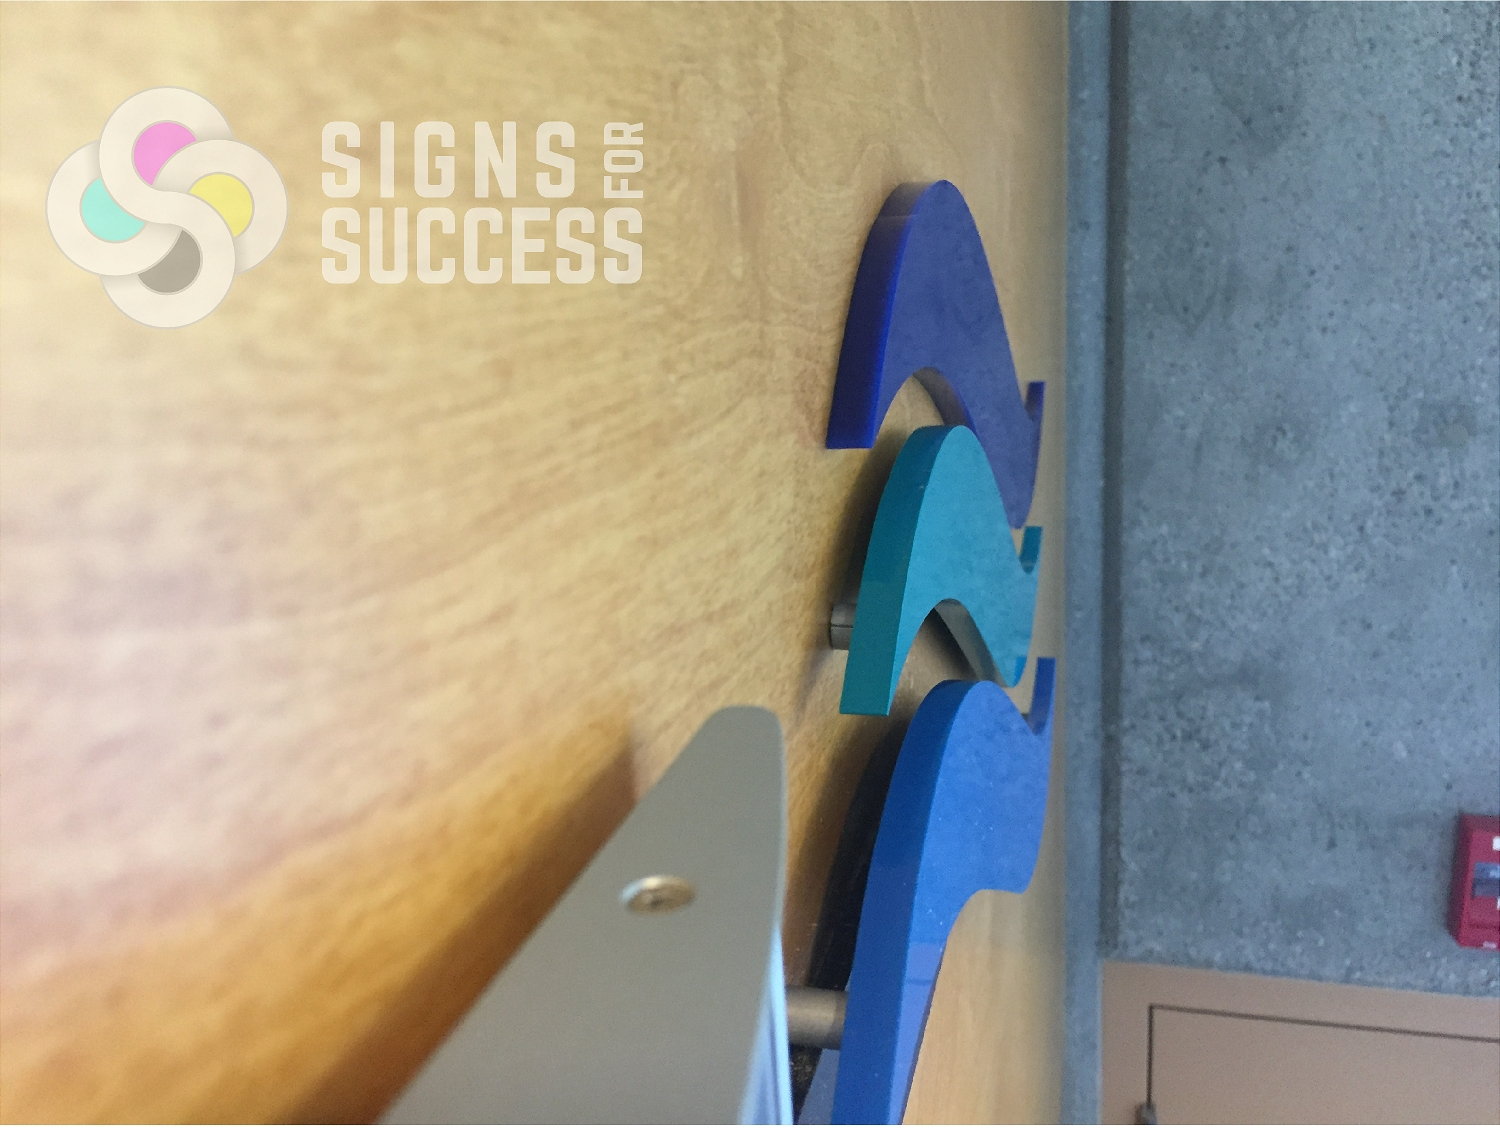 Wall Signs Archives - Signs for Success